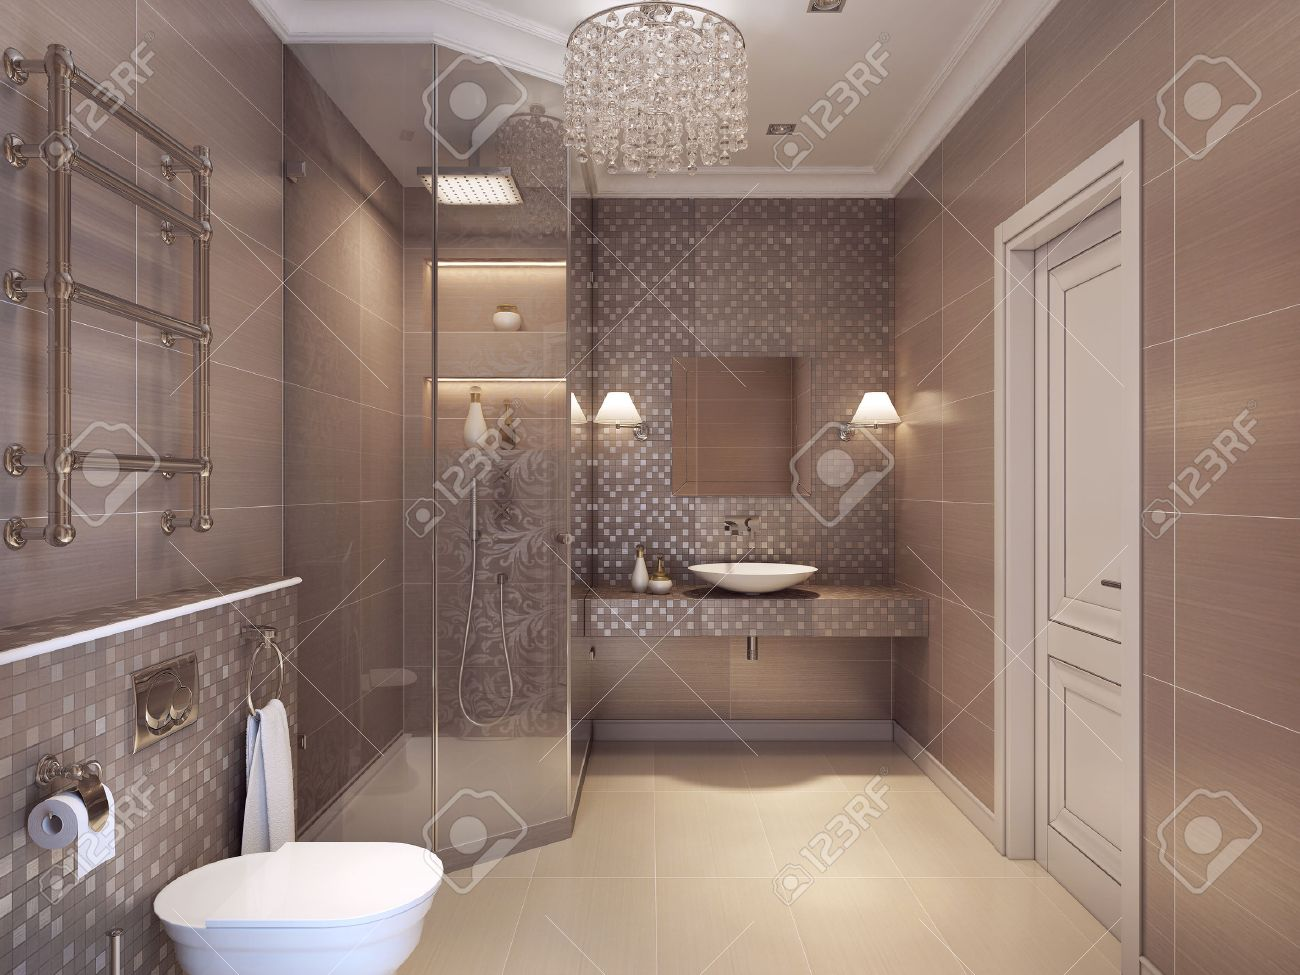 Art Deco Bathroom Accessories Modern Bathroom In The Art Deco Style Shower Wc And Sink